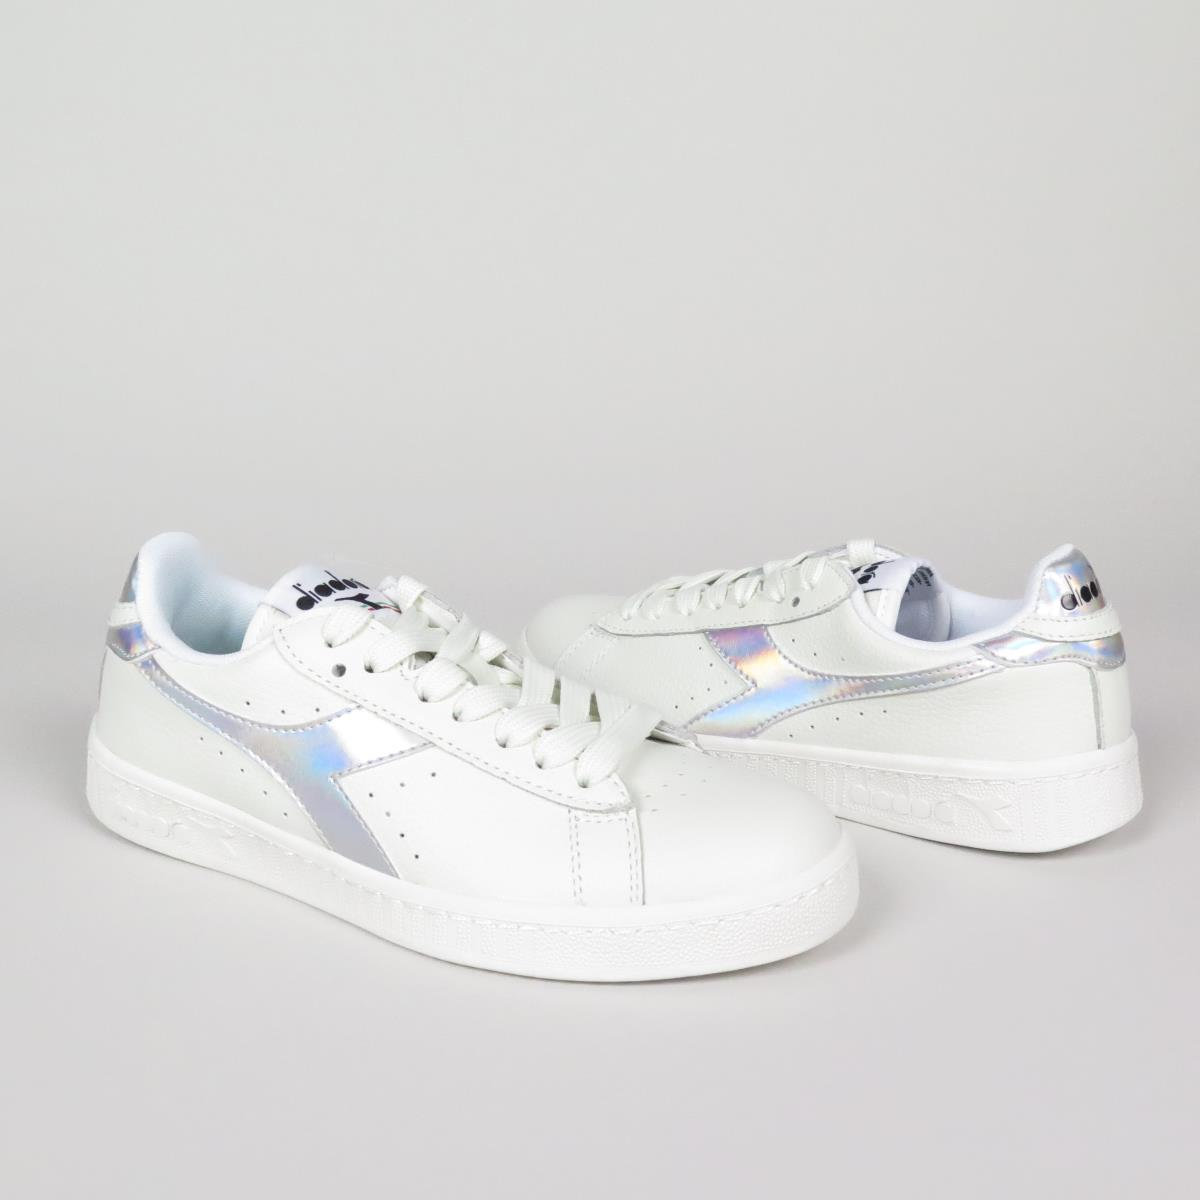 DIADORA GAME HOLOGRAM WHITE 171854 20006